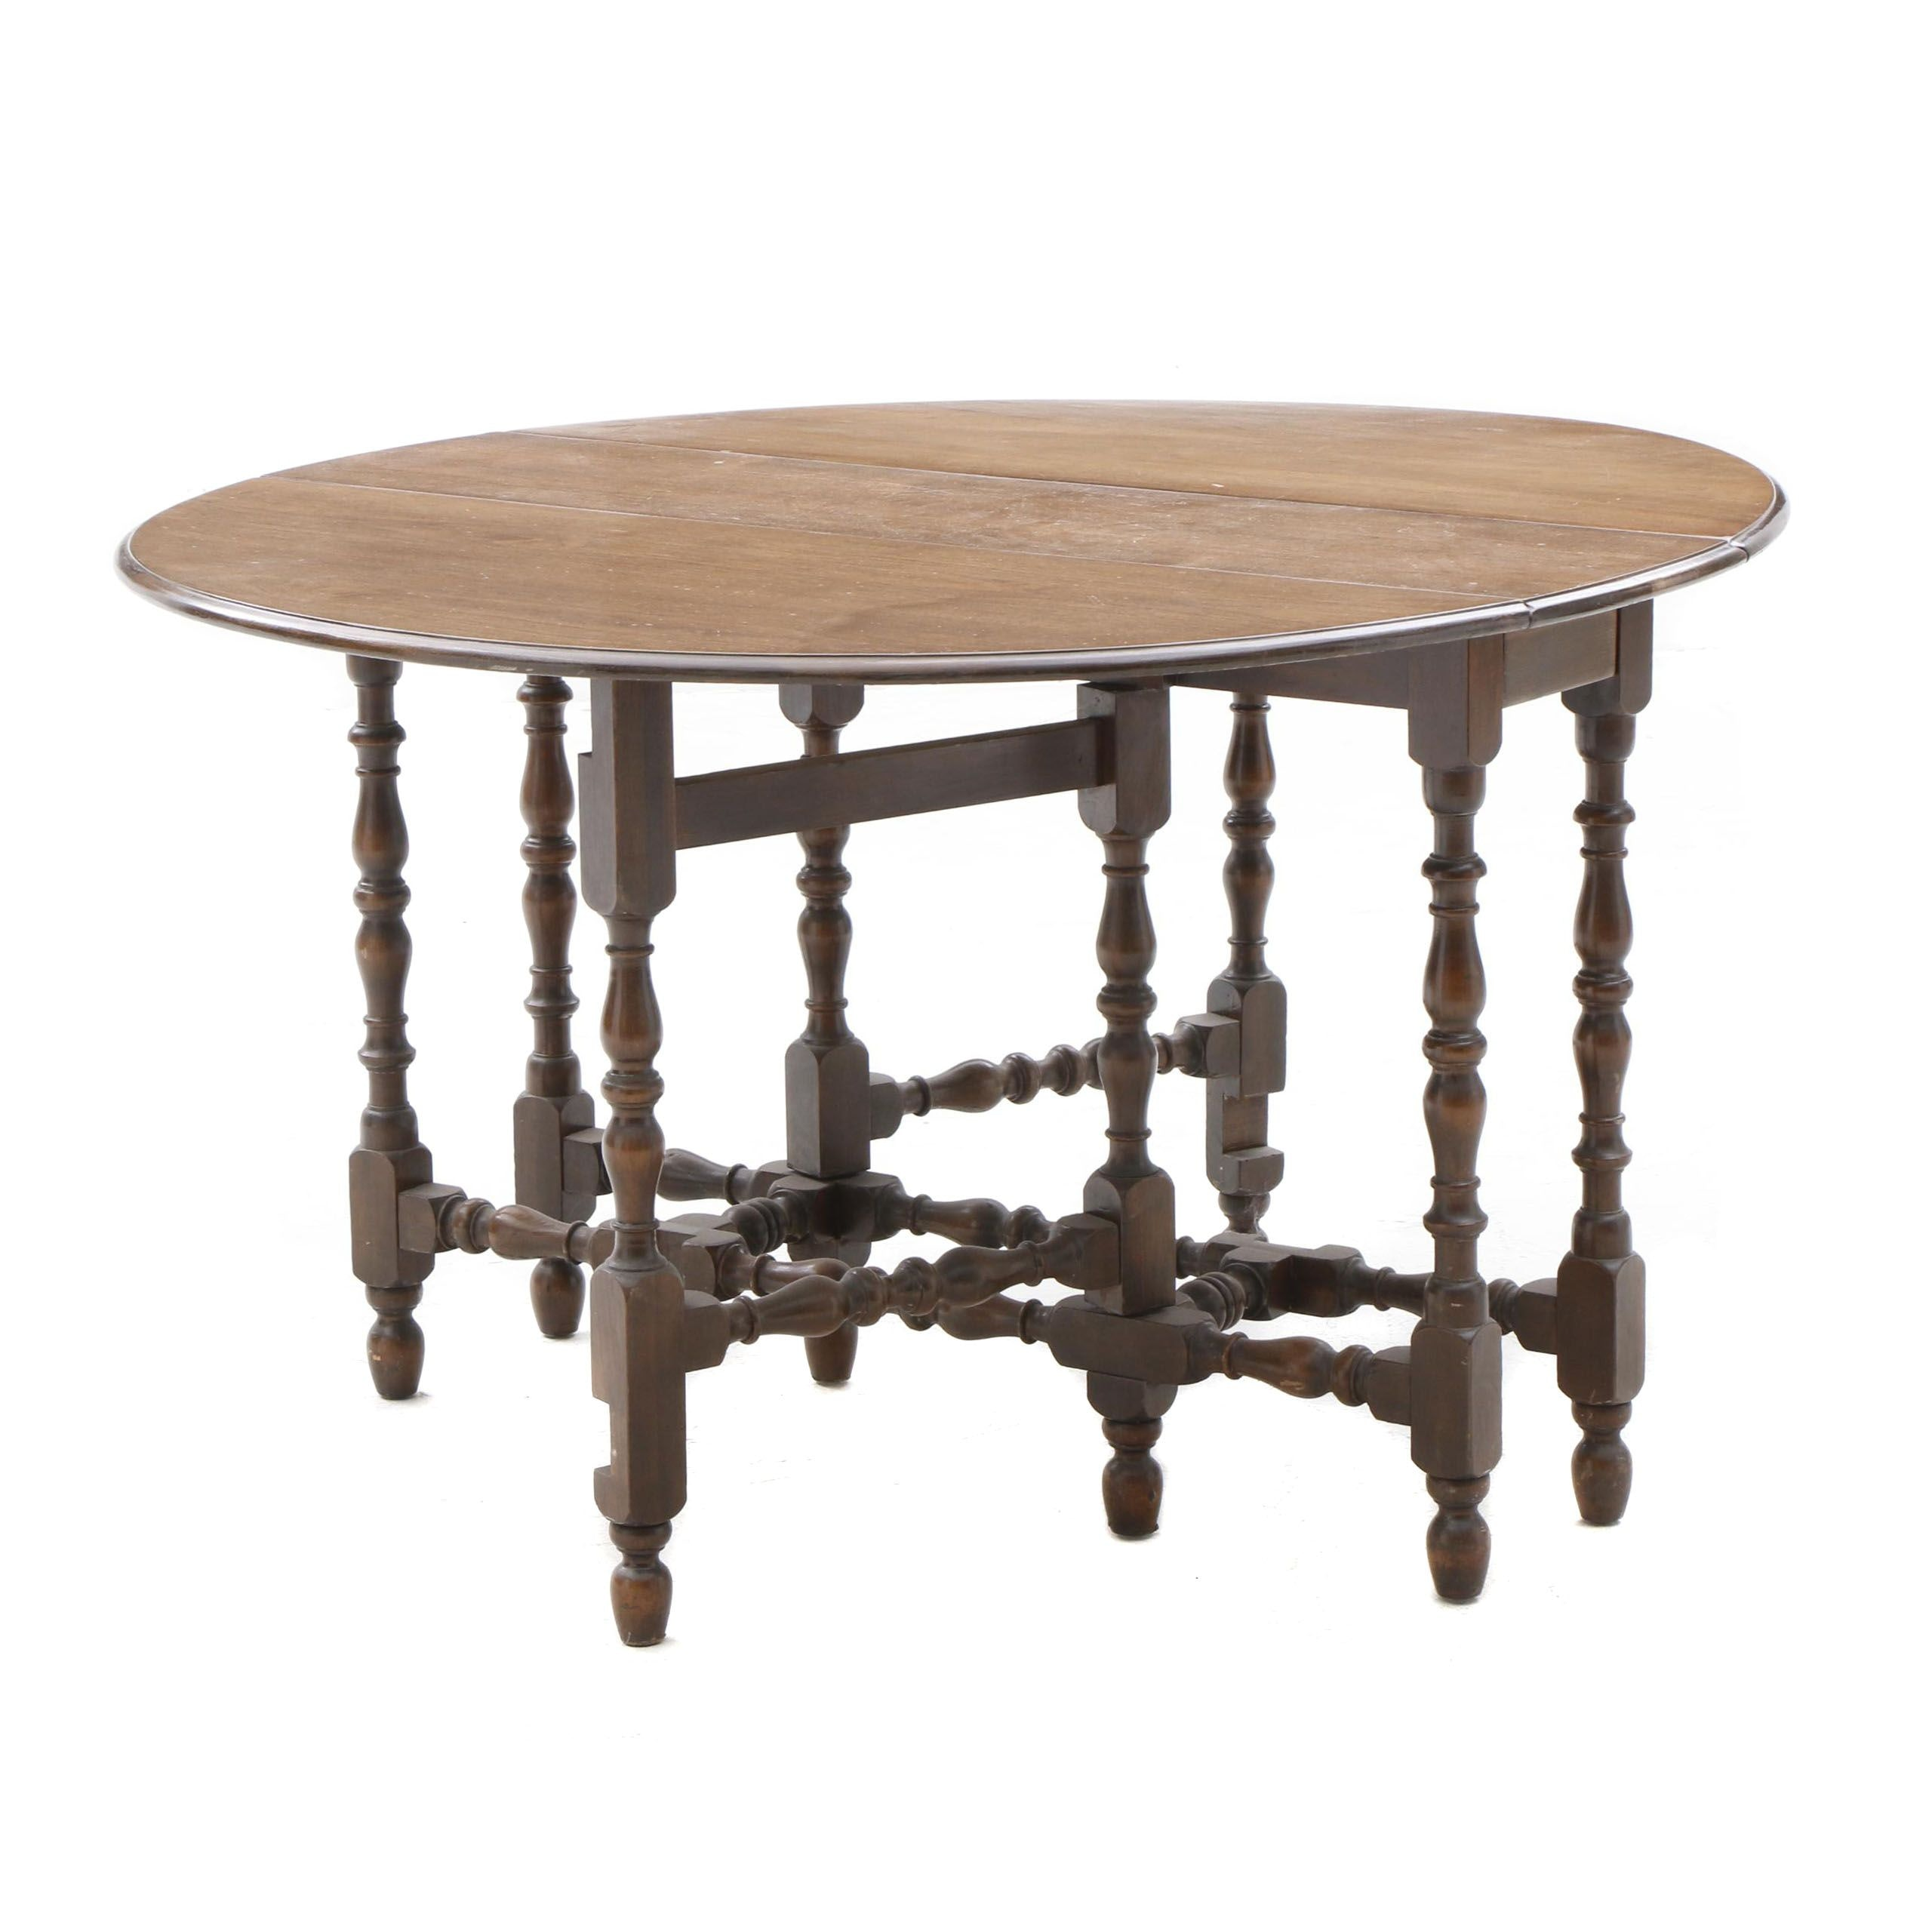 Walnut Gate-Leg Drop Leaf Table